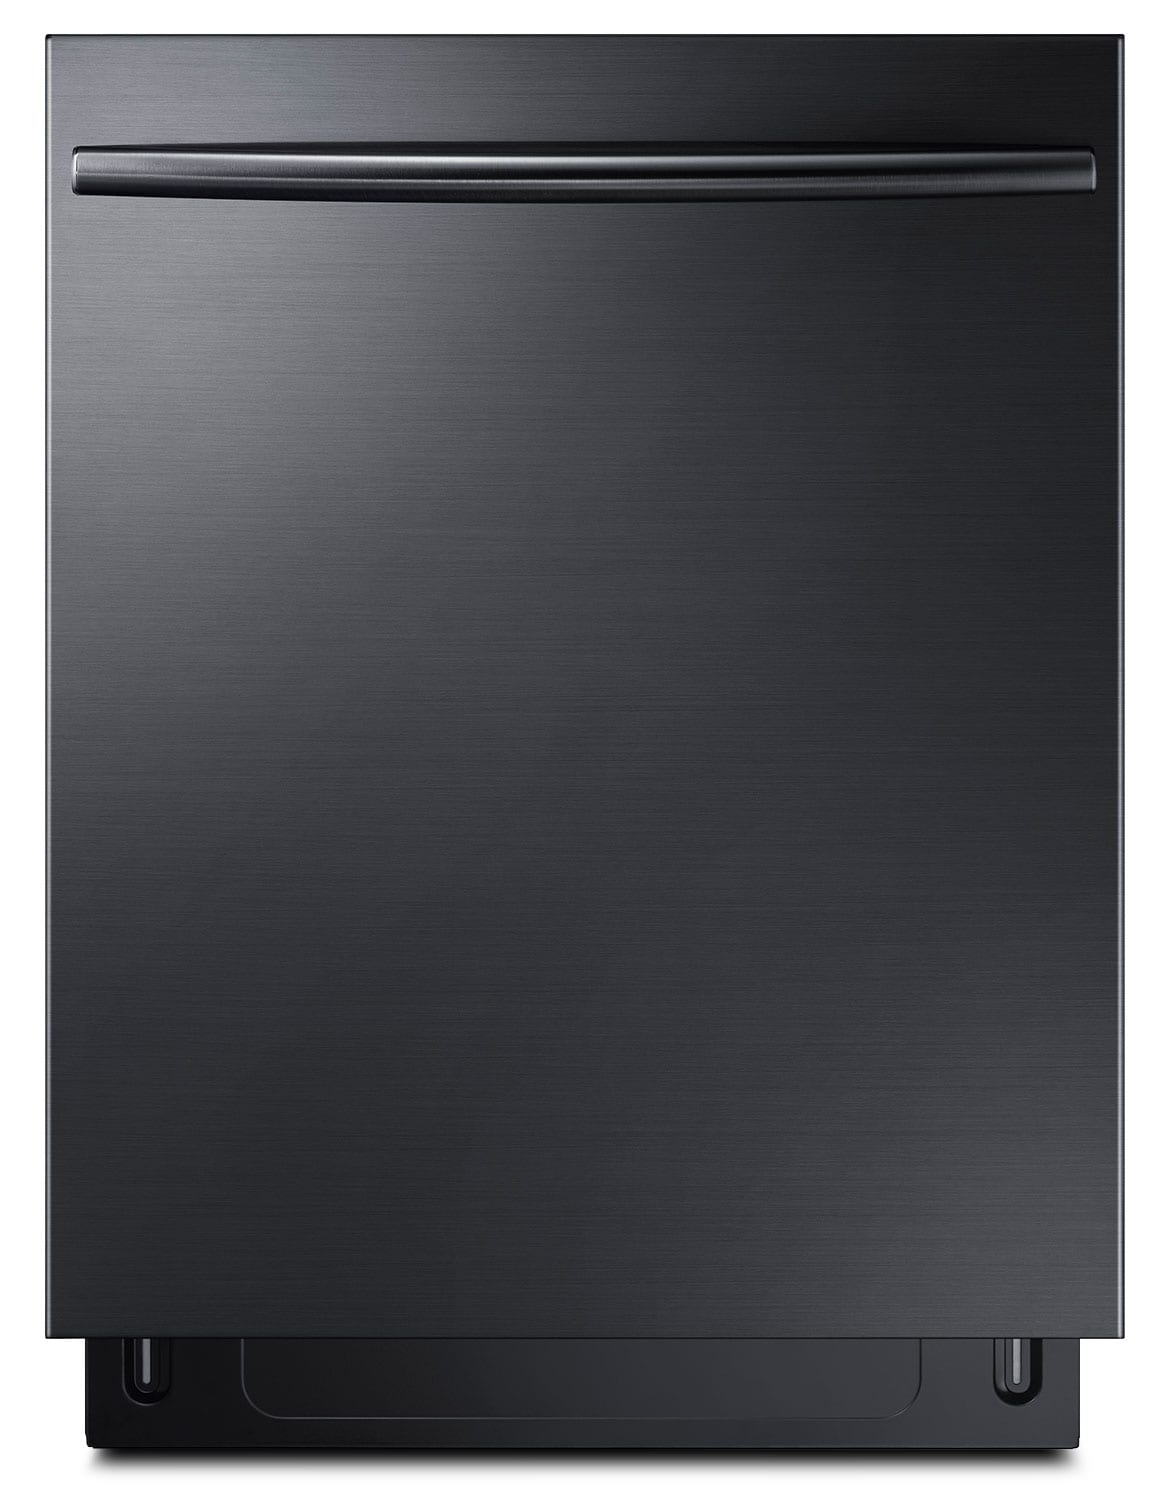 Clean-Up - Samsung Built-In Dishwasher with Auto-Open Drying – DW80K7050UG/AC